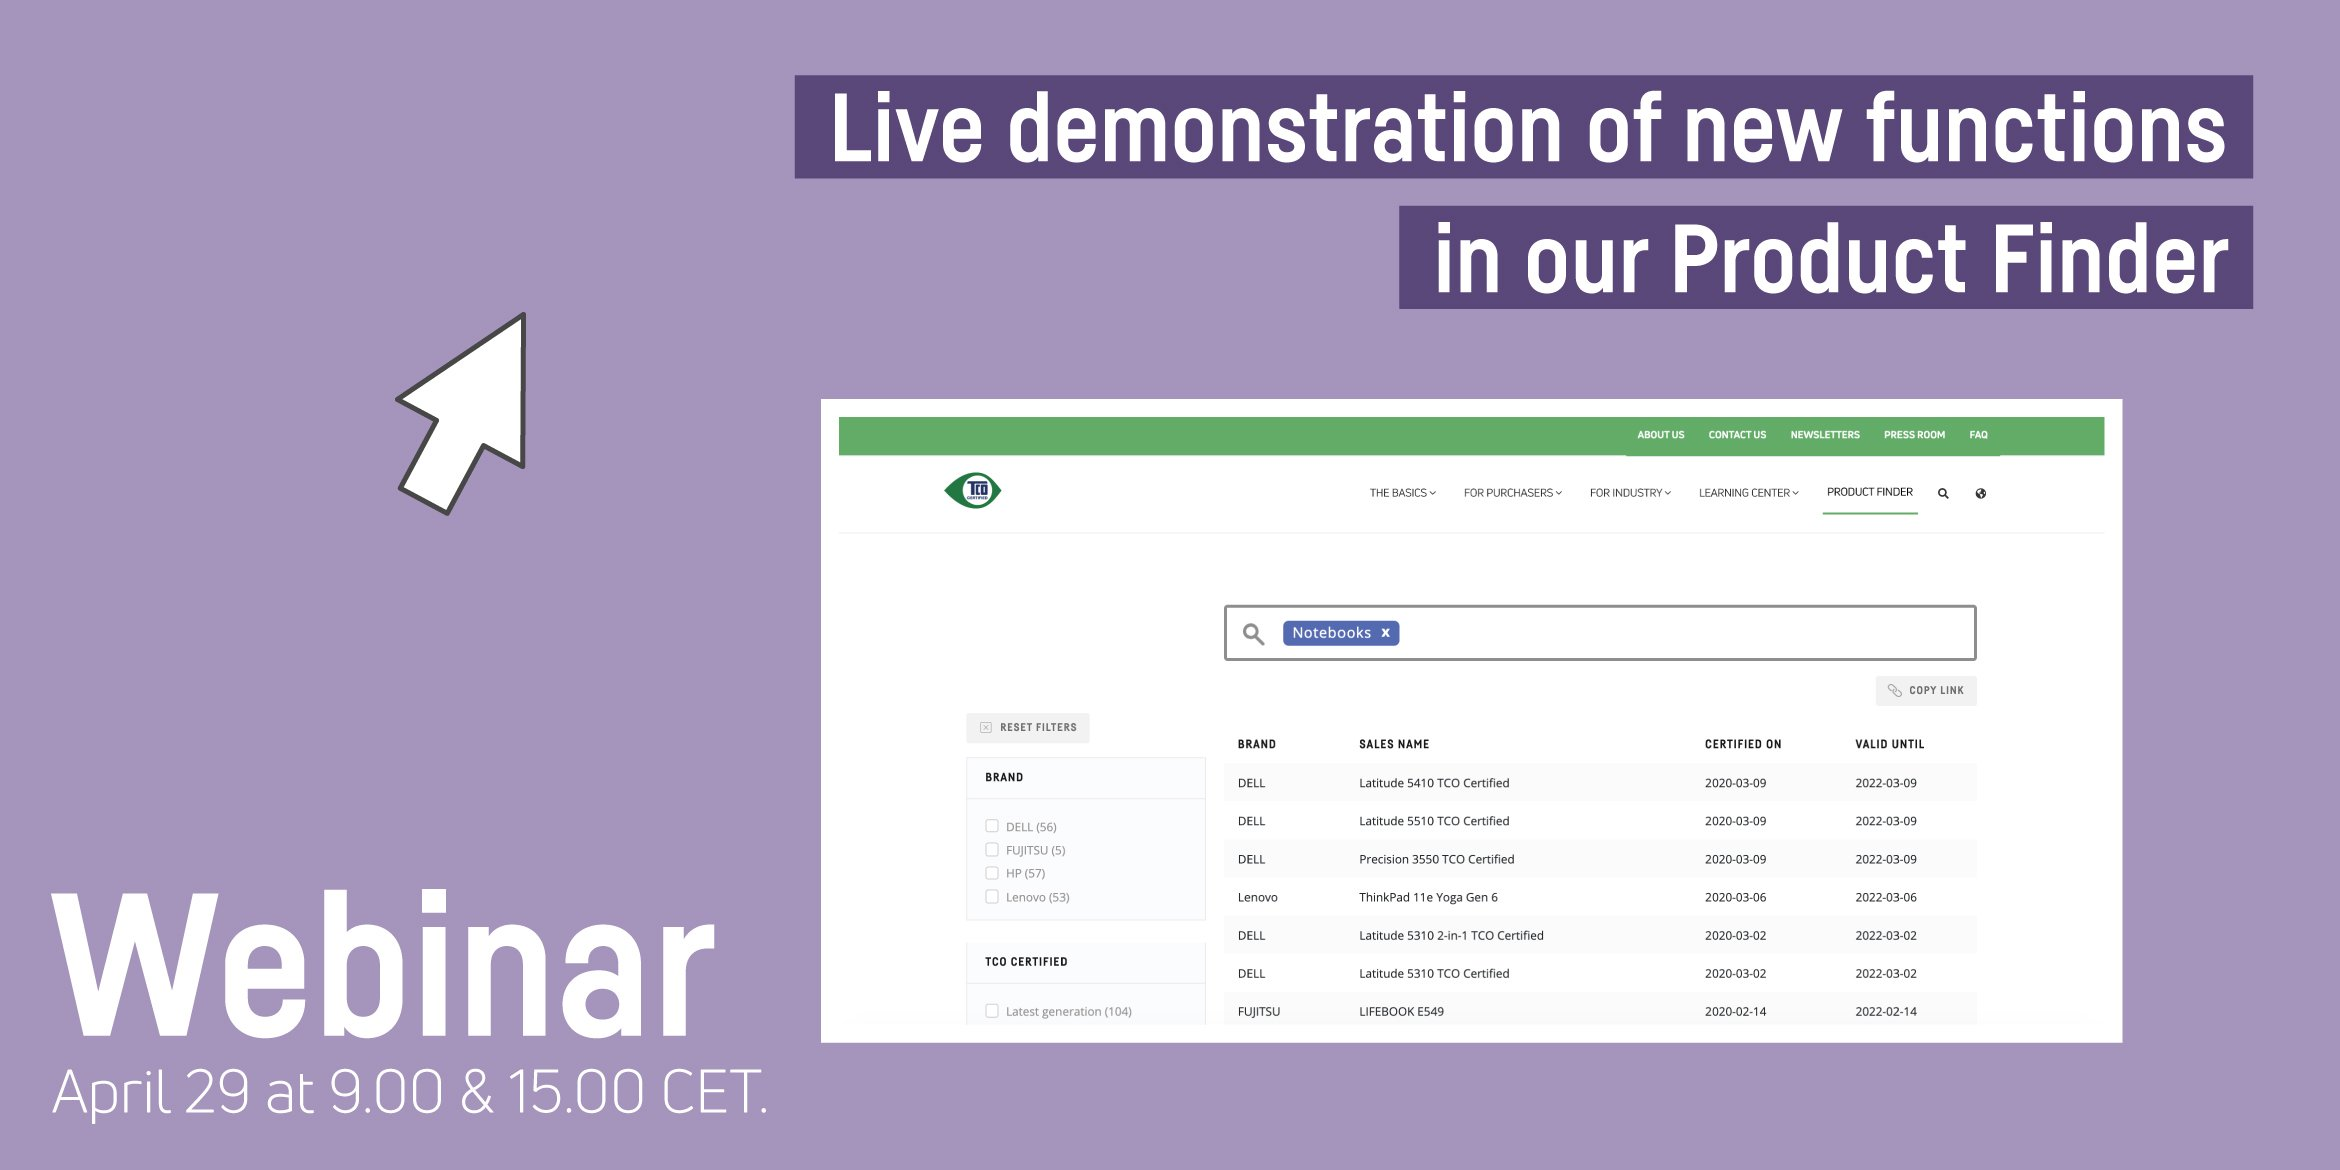 Webinar: Live demonstration of new functions in our Product Finder